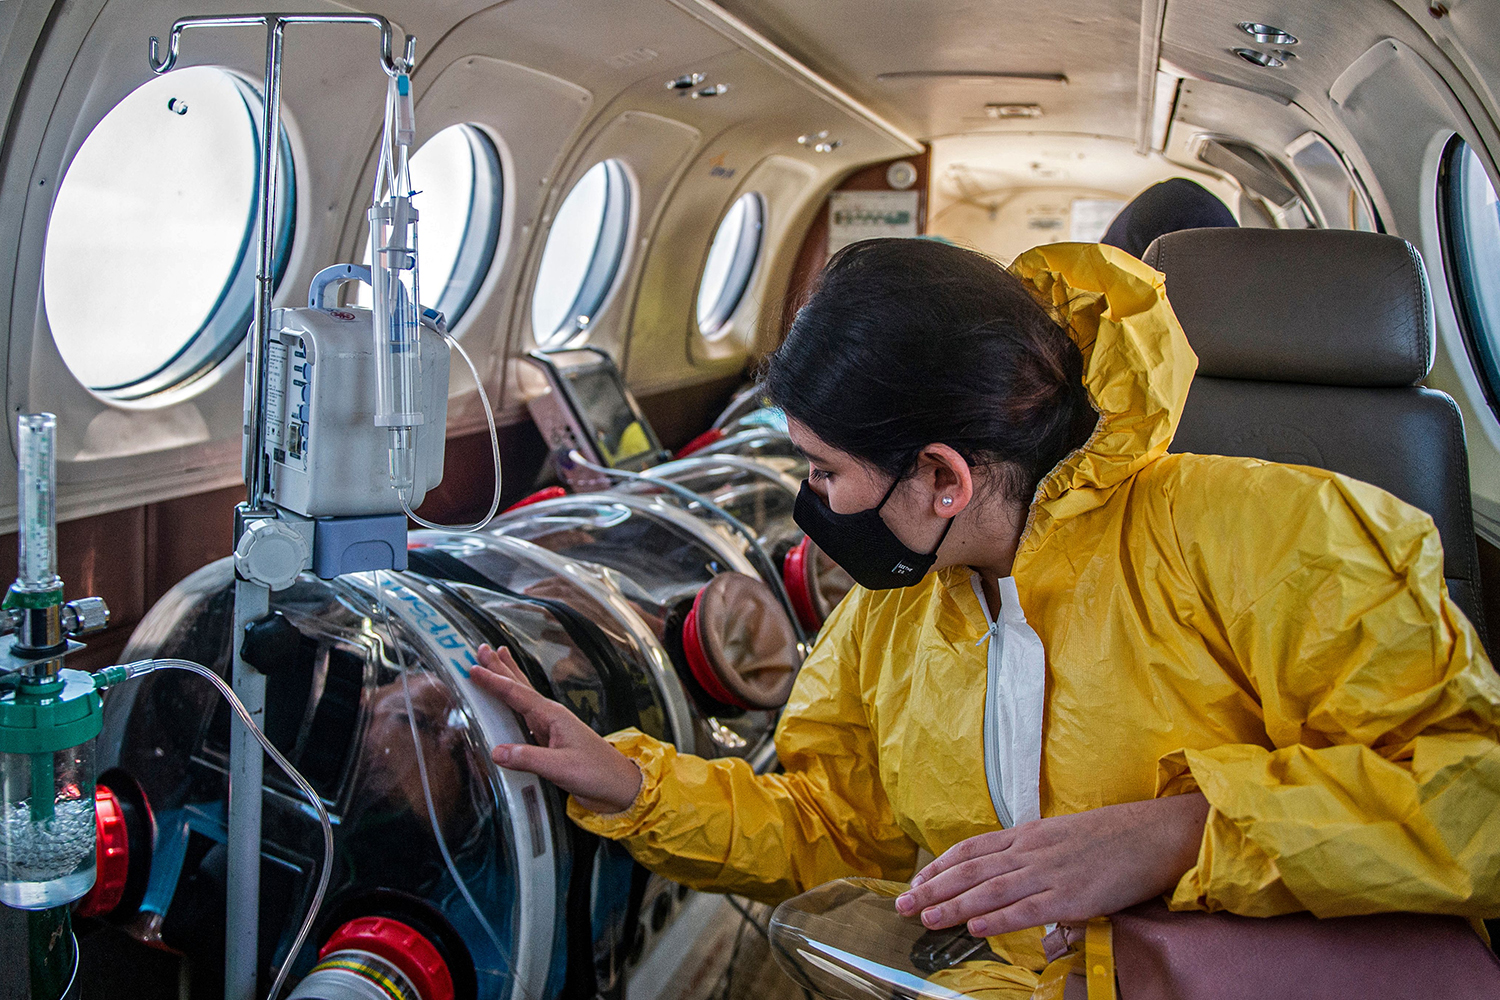 Andrea Lara looks at her father, Juan Carlos Lara, 59, a patient with COVID-19, as he is transferred inside a security capsule on an air ambulance from Iquitos, Peru, to Rebagliati Hospital in Lima on Sept. 1. ERNESTO BENAVIDES/AFP via Getty Images